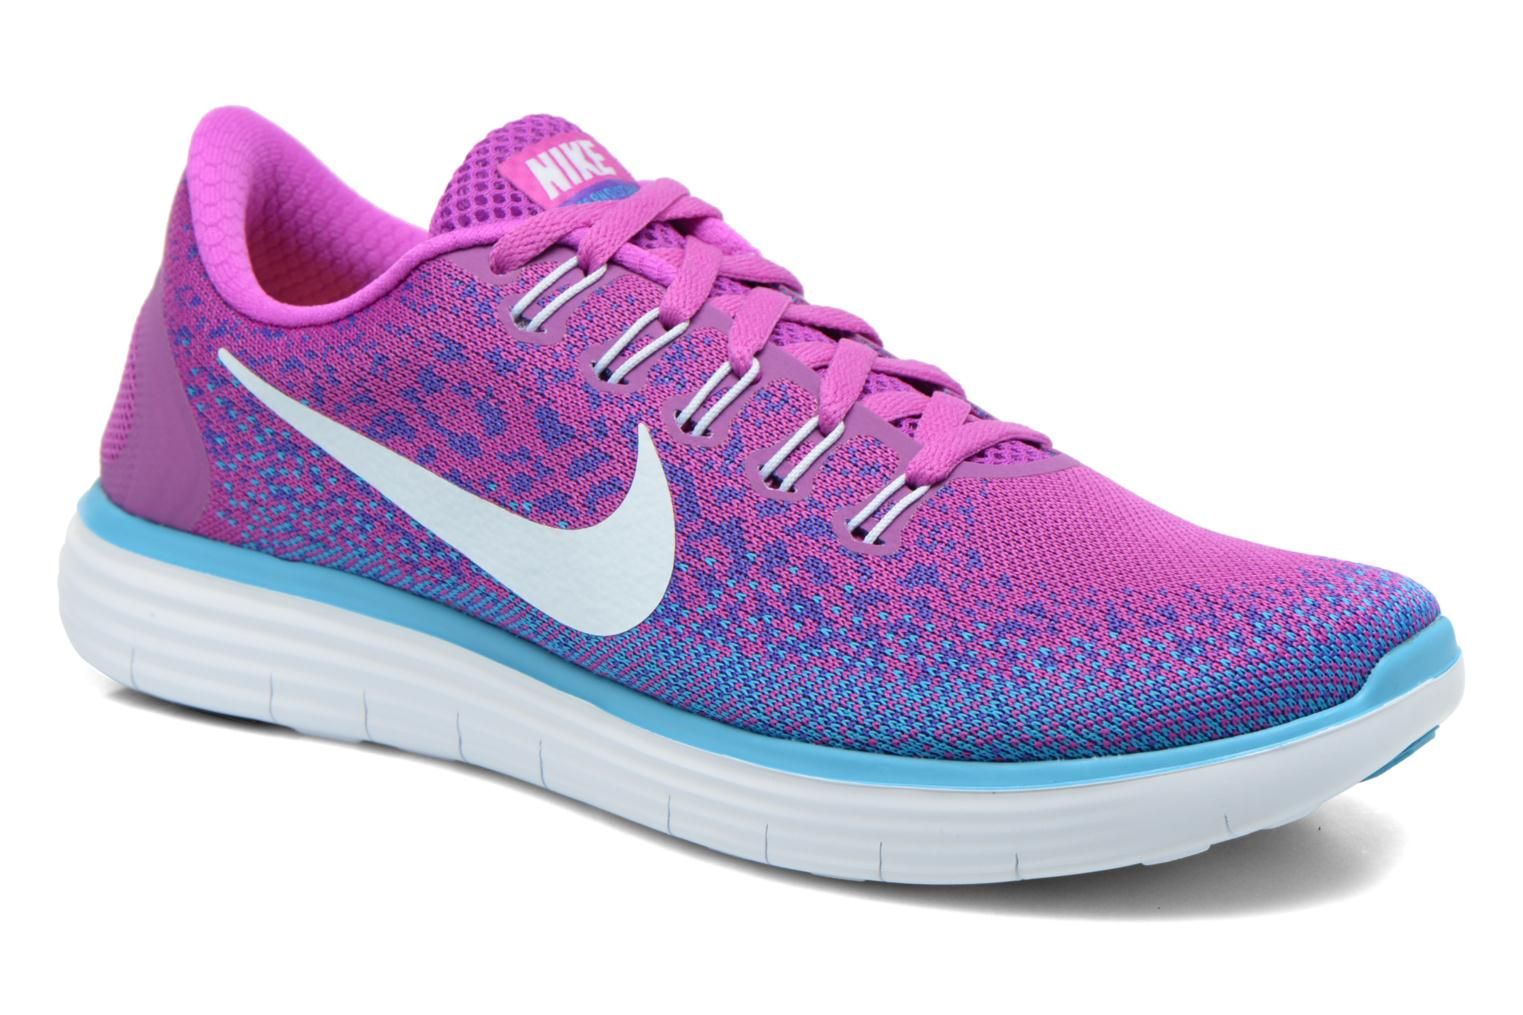 44ca95b388844 ... italy sport shoes nike wmns nike free rn distance purple detailed view  pair view 60b69 e9c8c